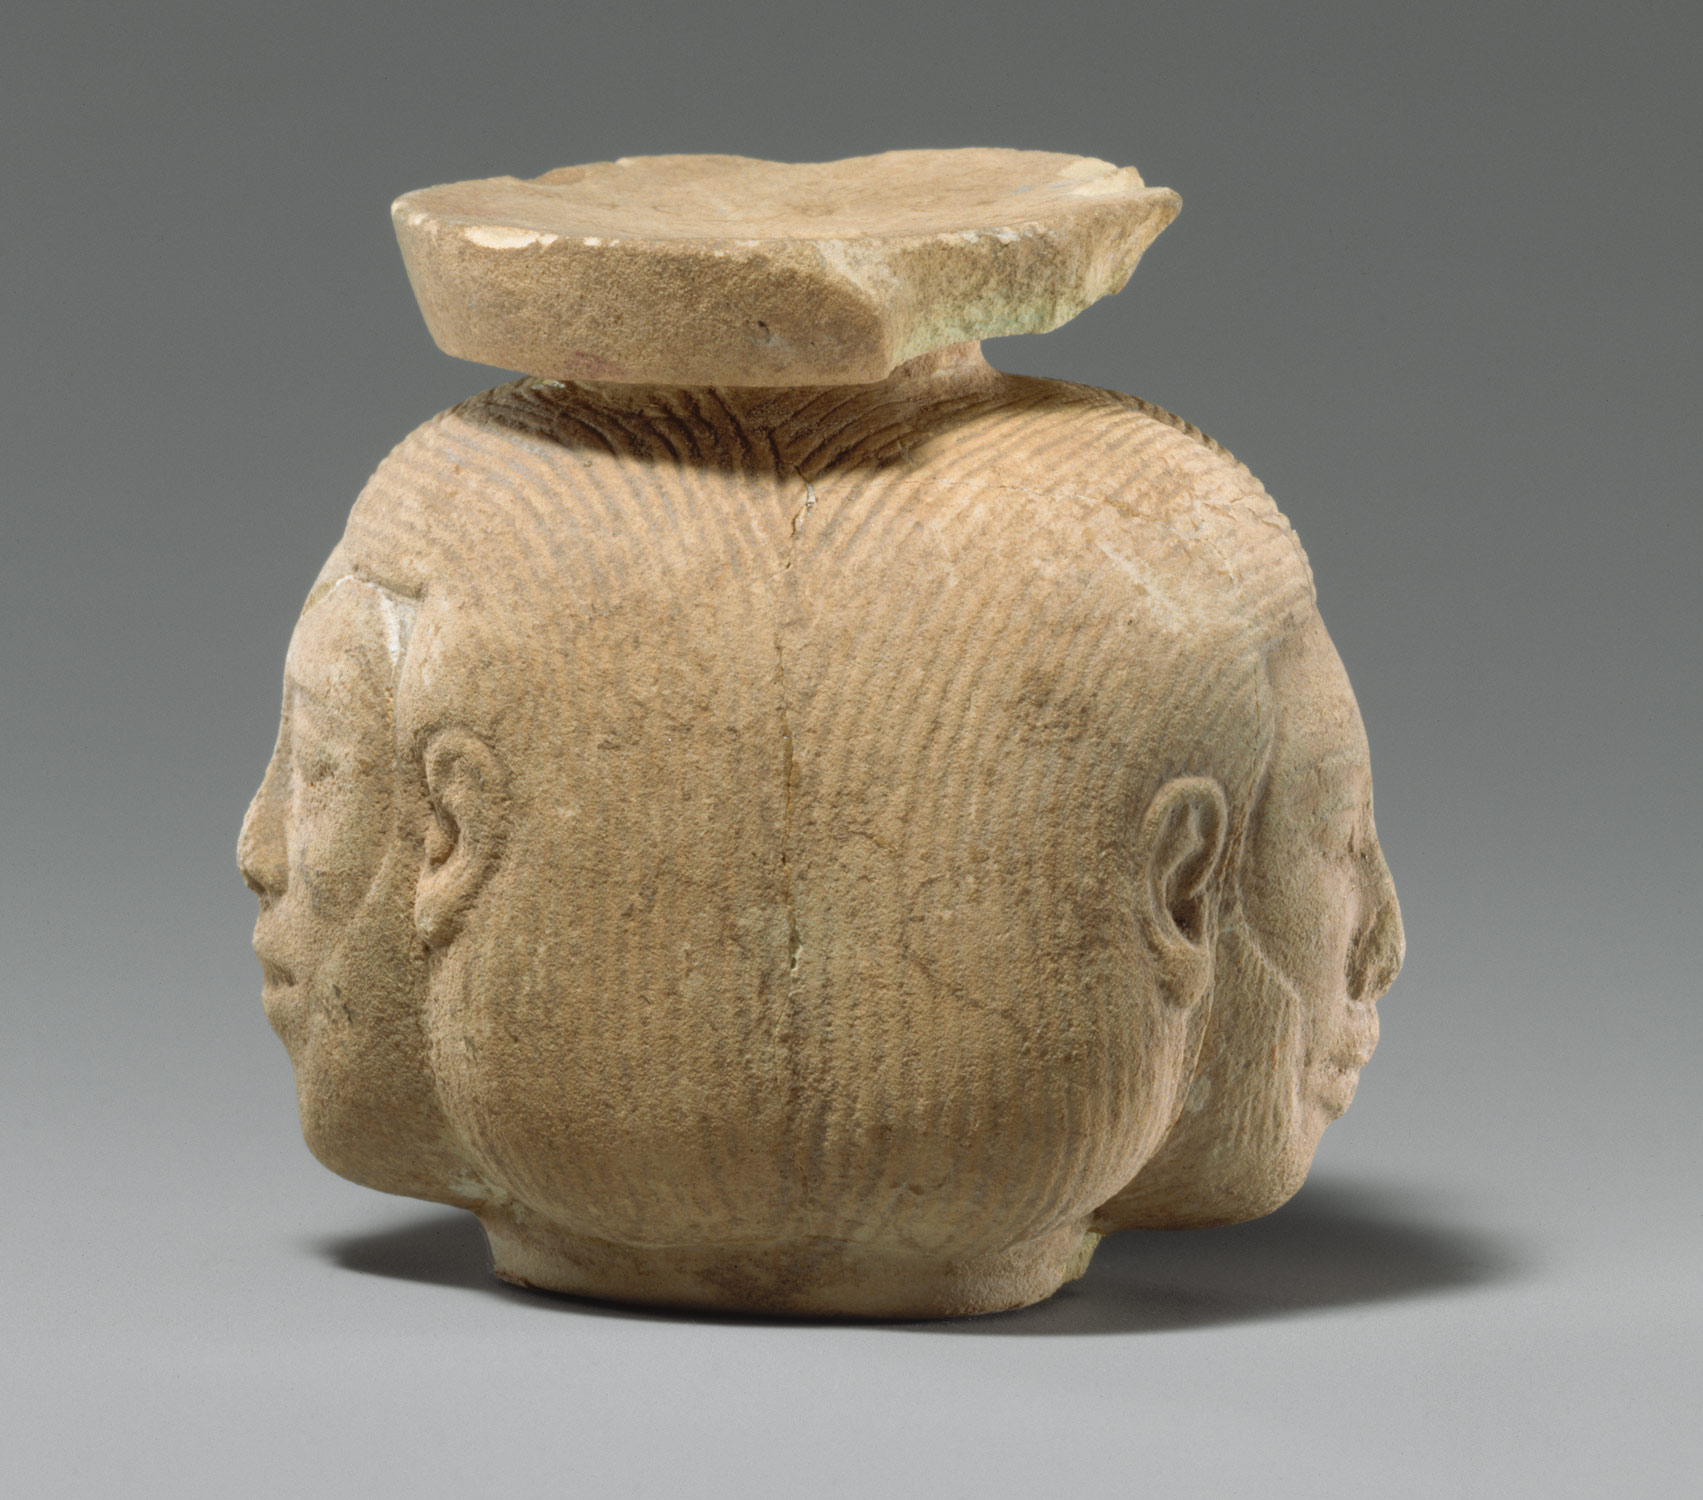 Aryballos (perfume vase) in the form of two heads